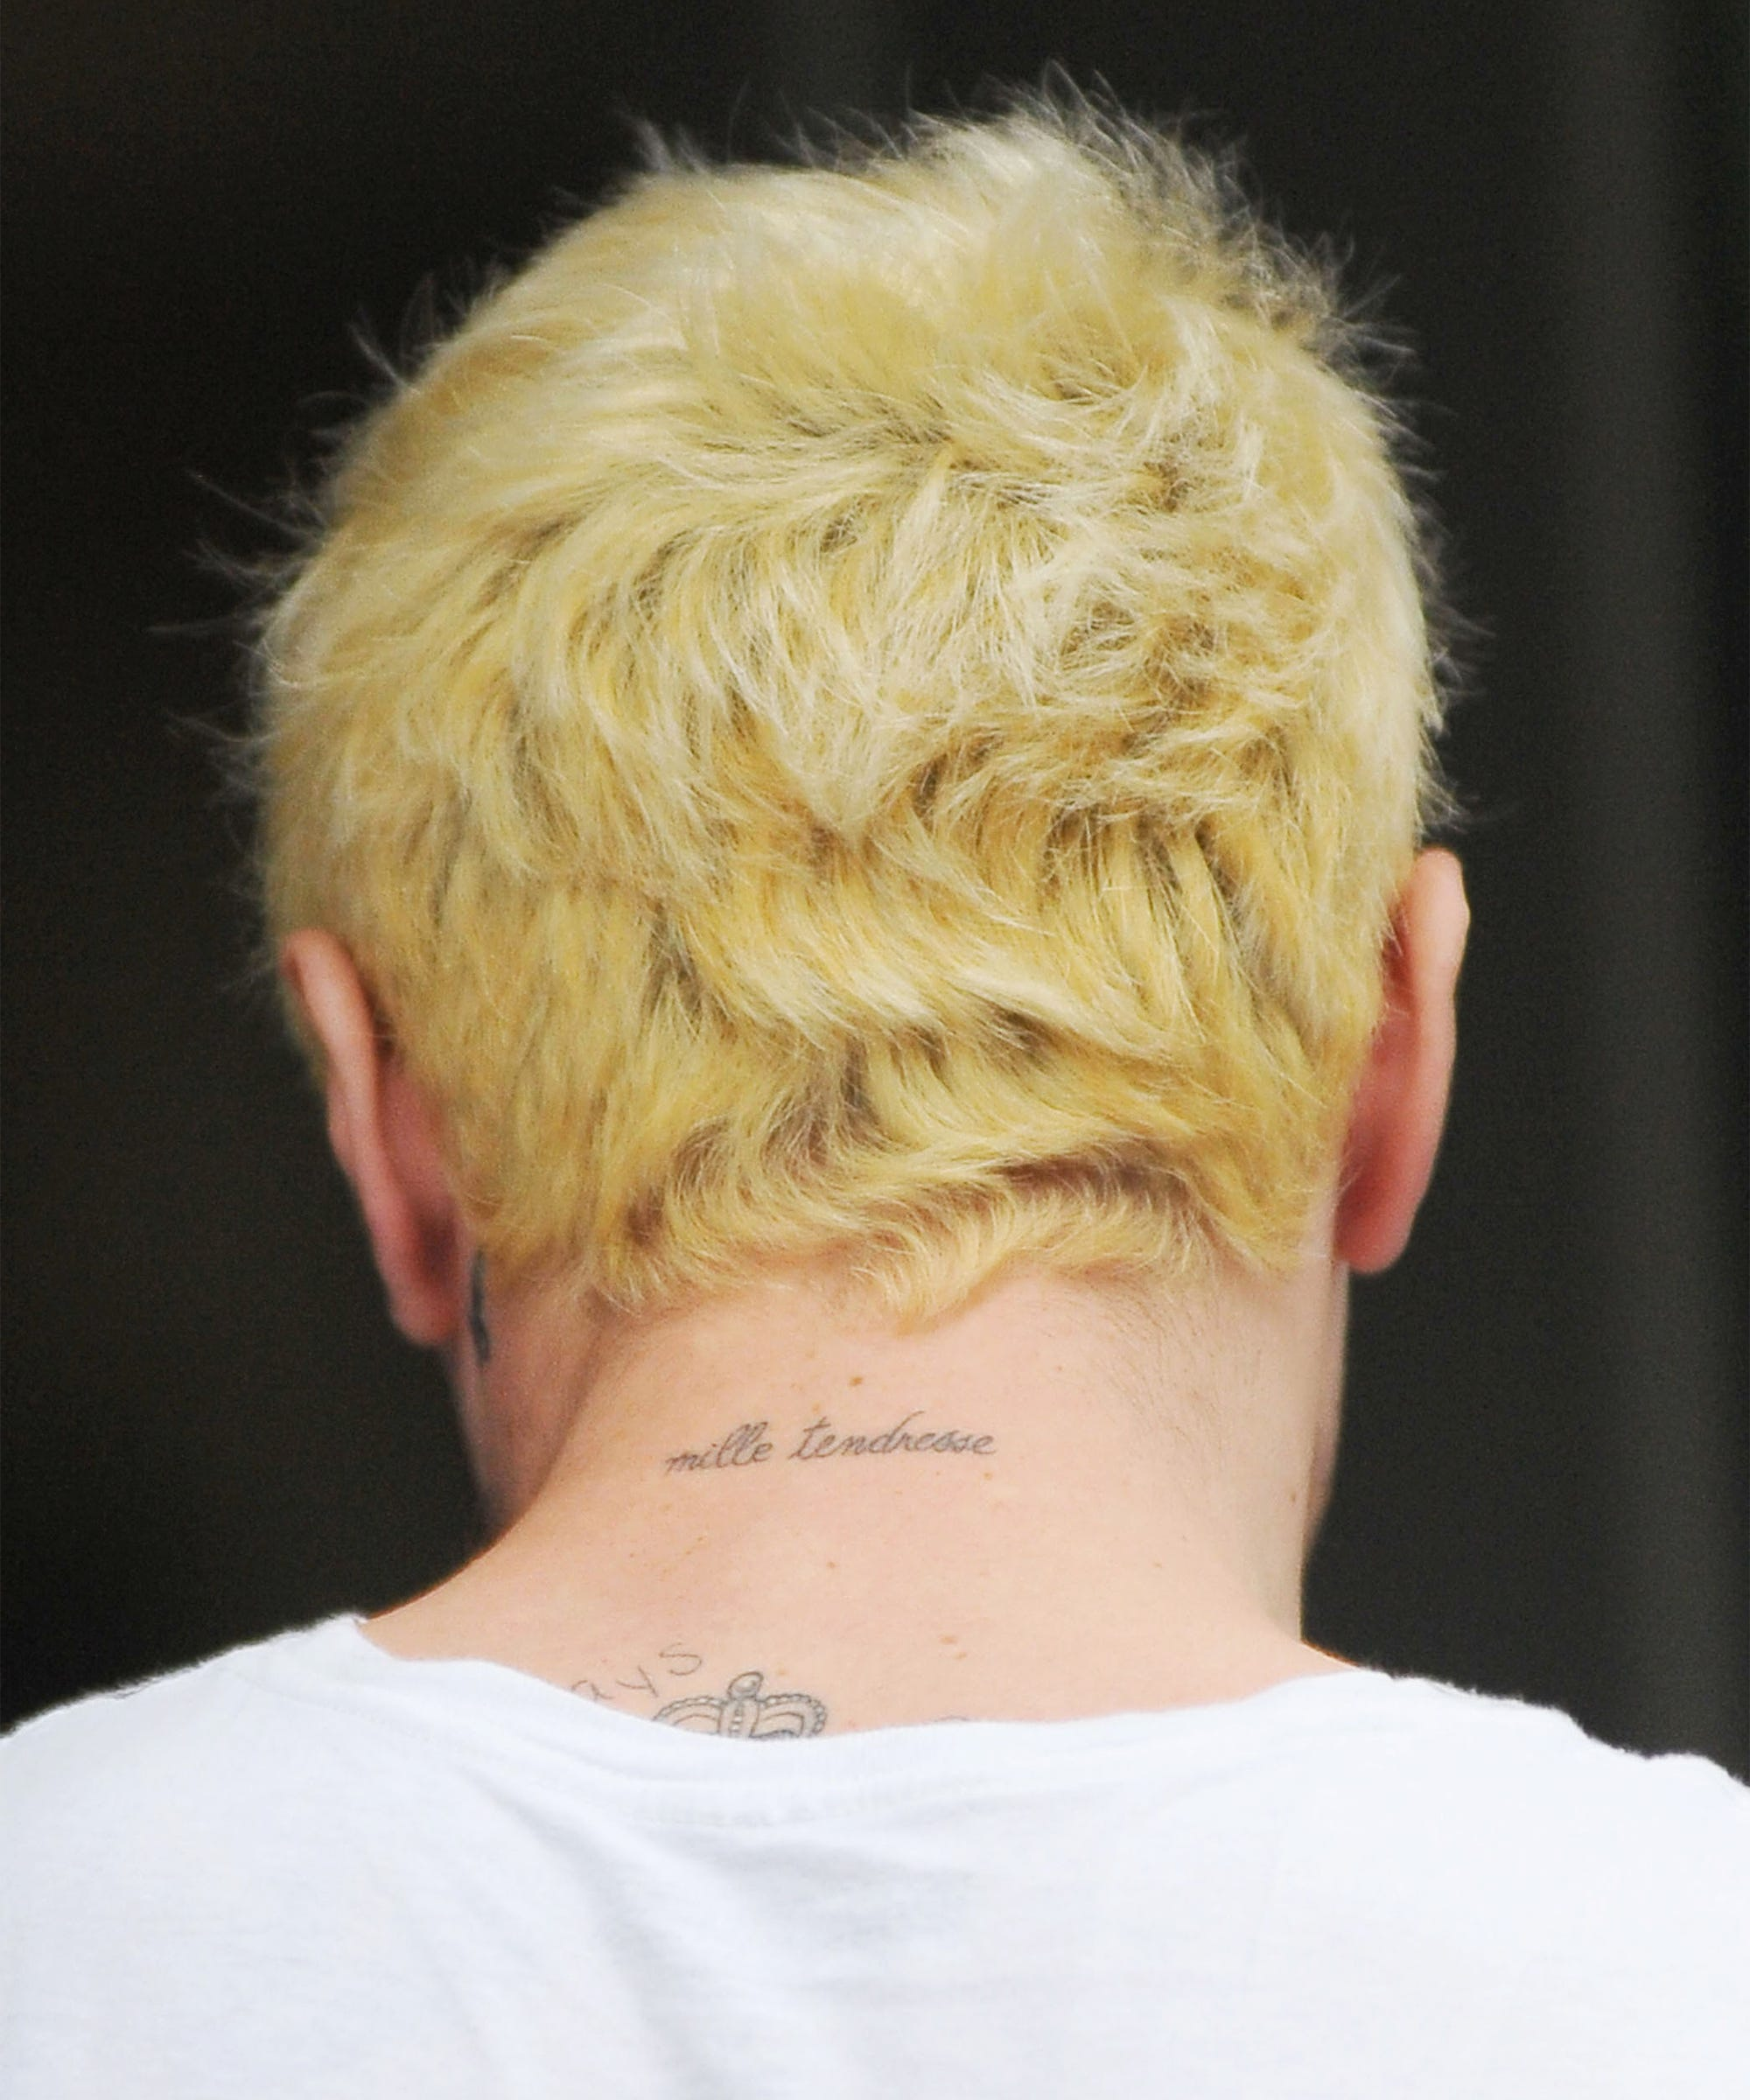 89946468d Pete Davidson Copied One Of Ariana Grande's Old Tattoos